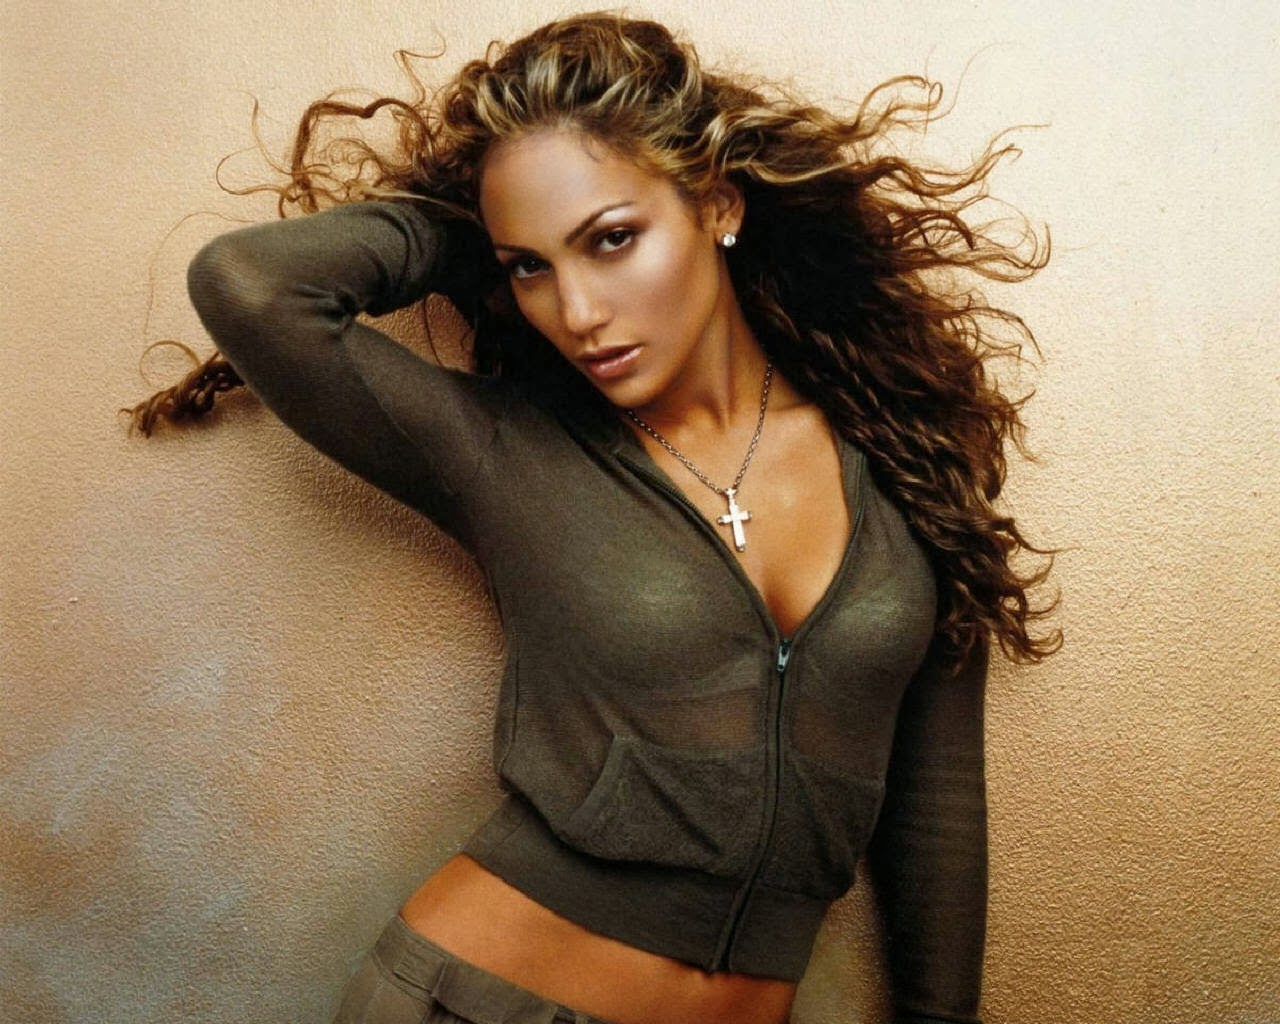 blogspotcom jennifer lopez - photo #18